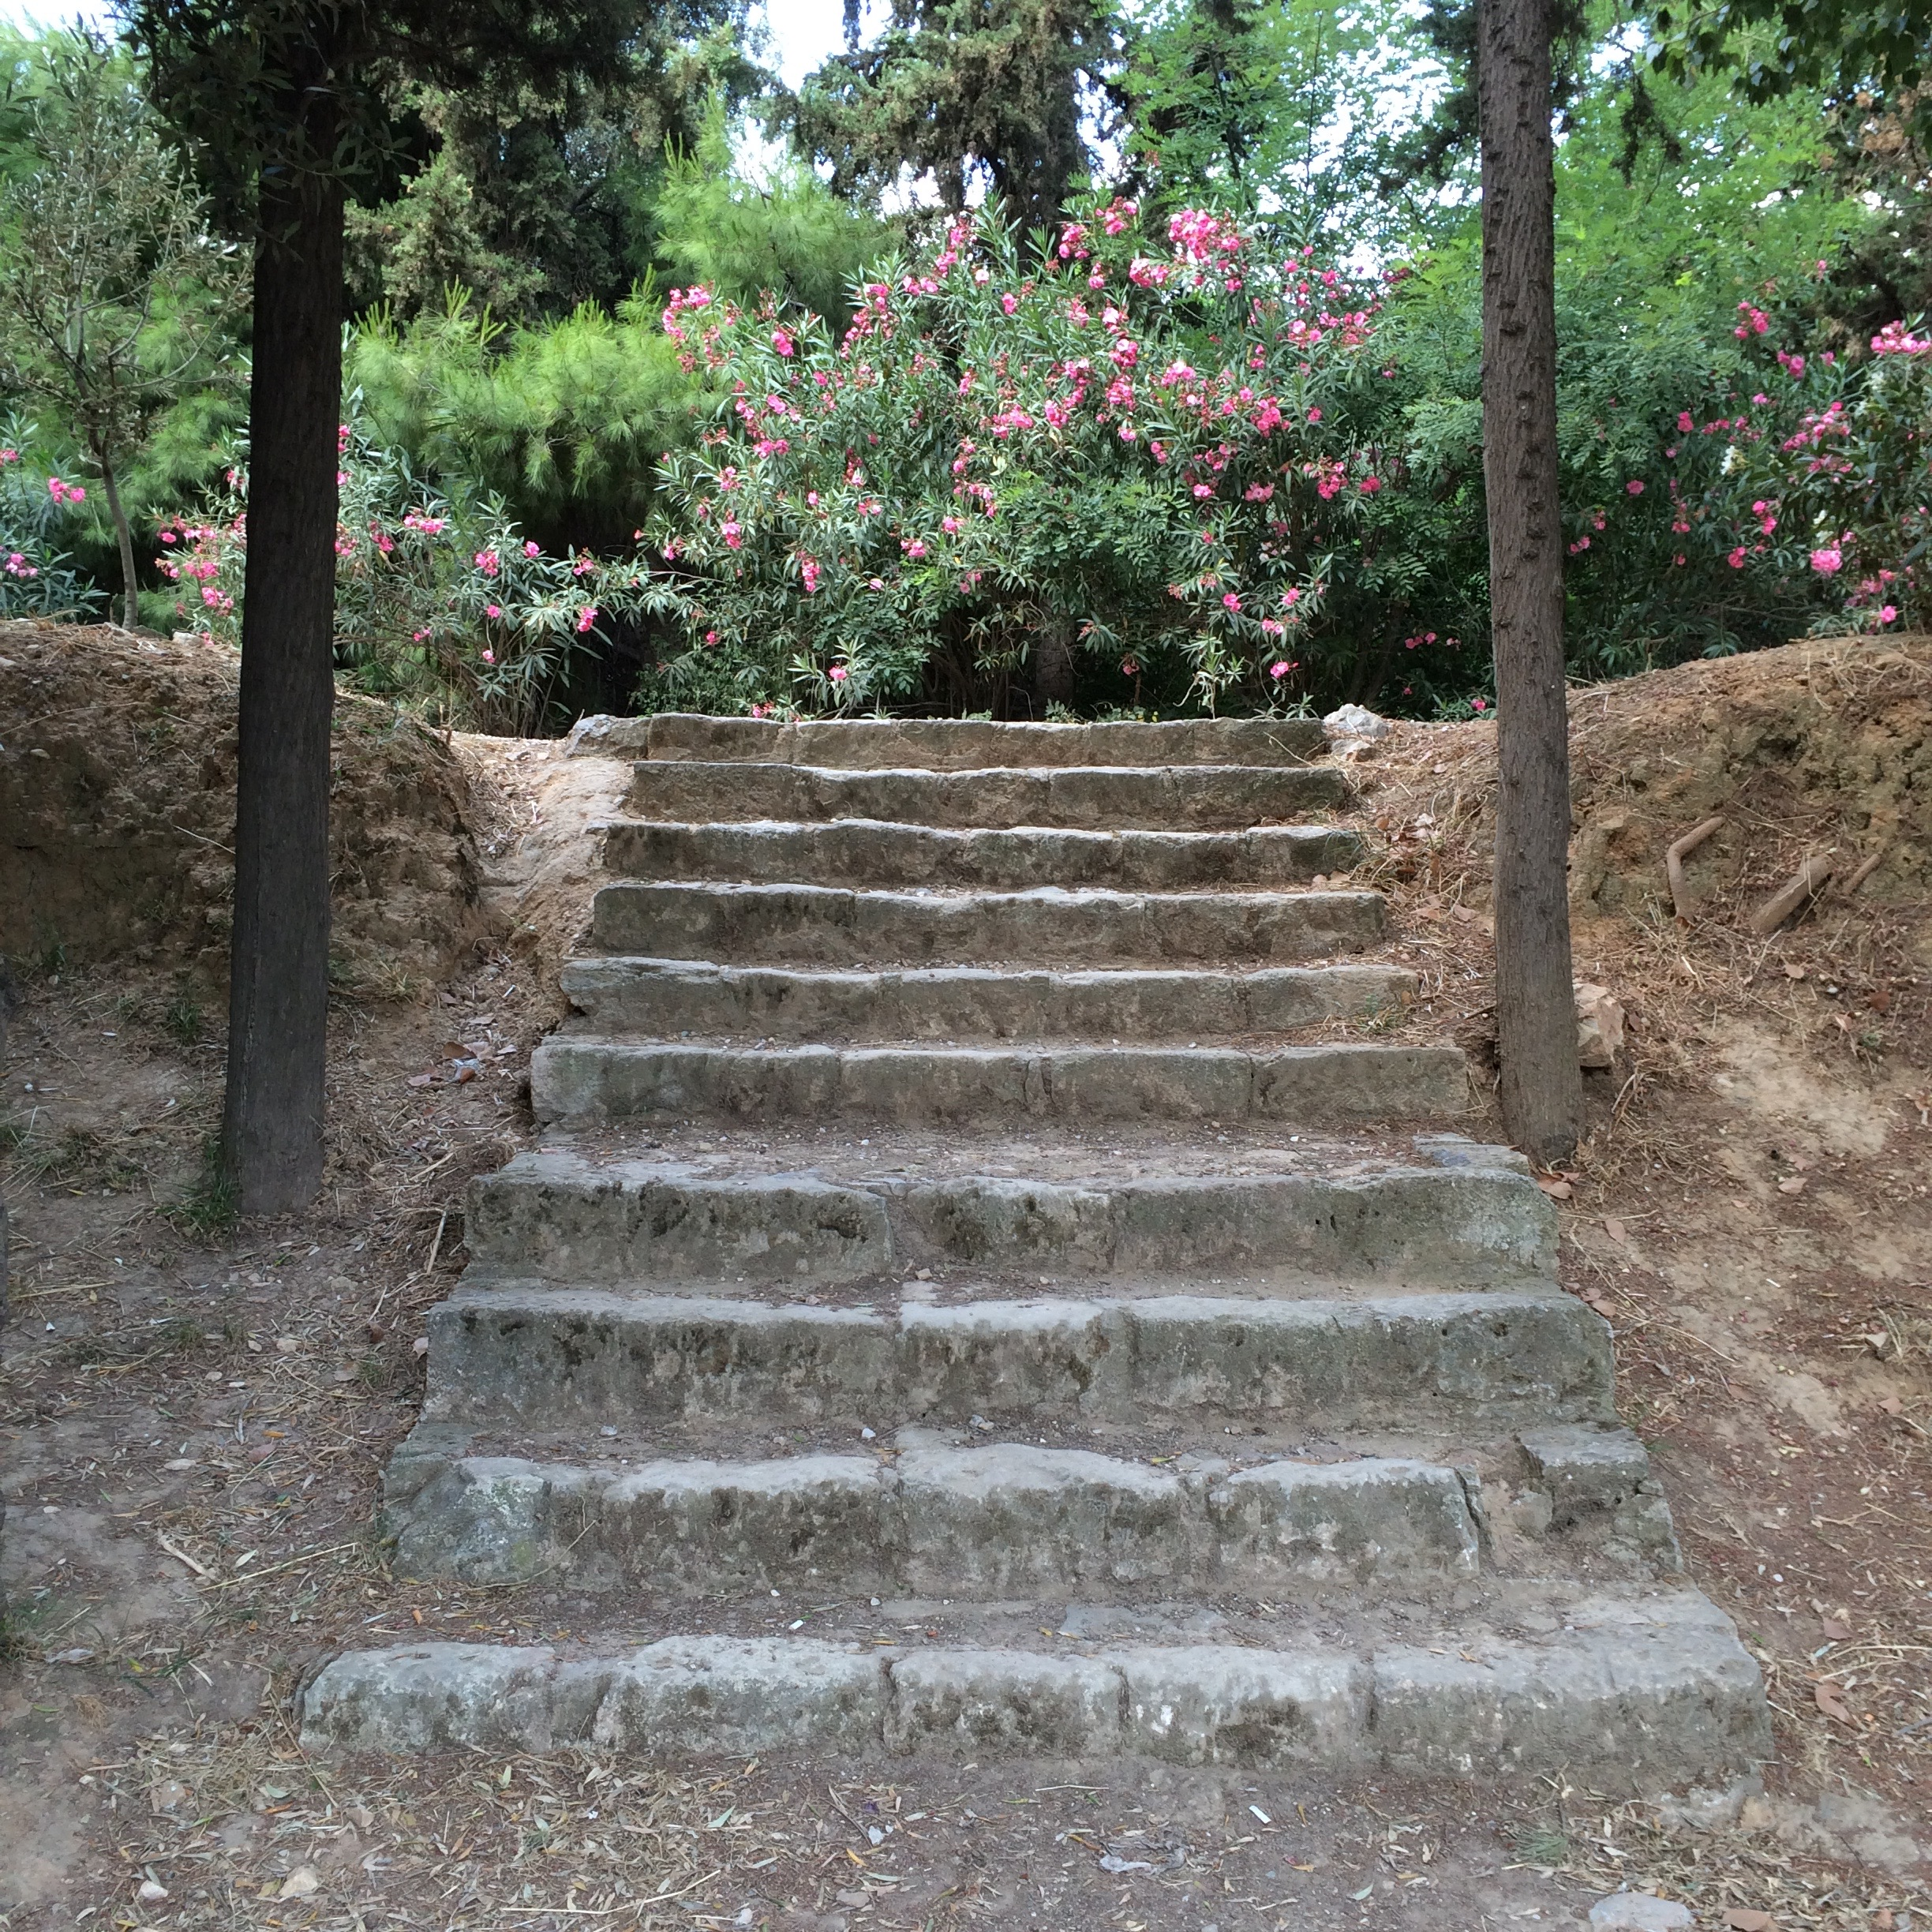 Ancient stairway next to the site of Plato's Academy in Athens.